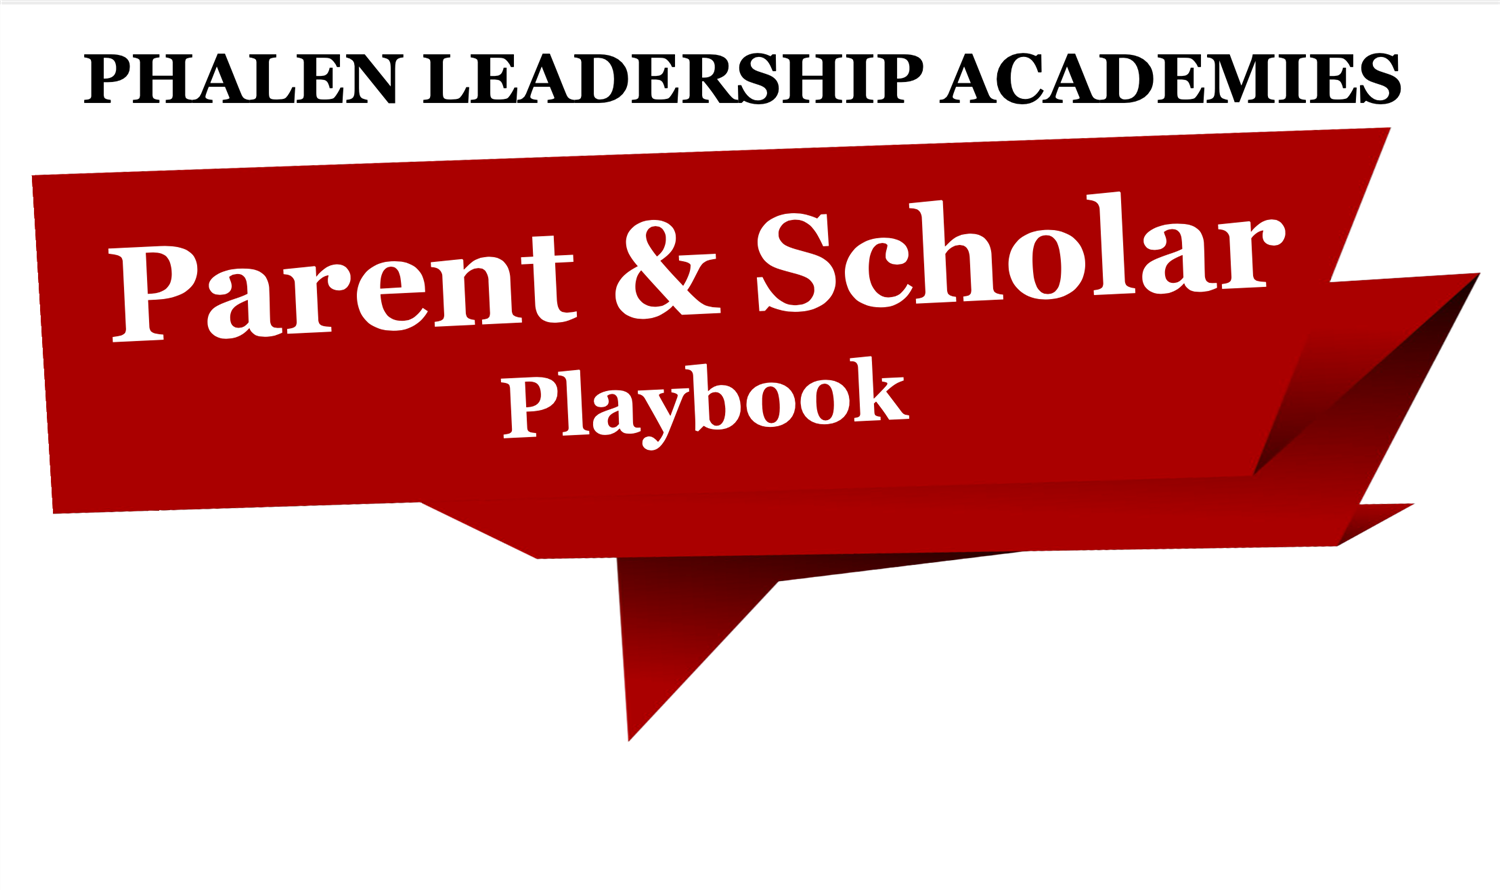 James and Rosemary Phalen Leadership Academy